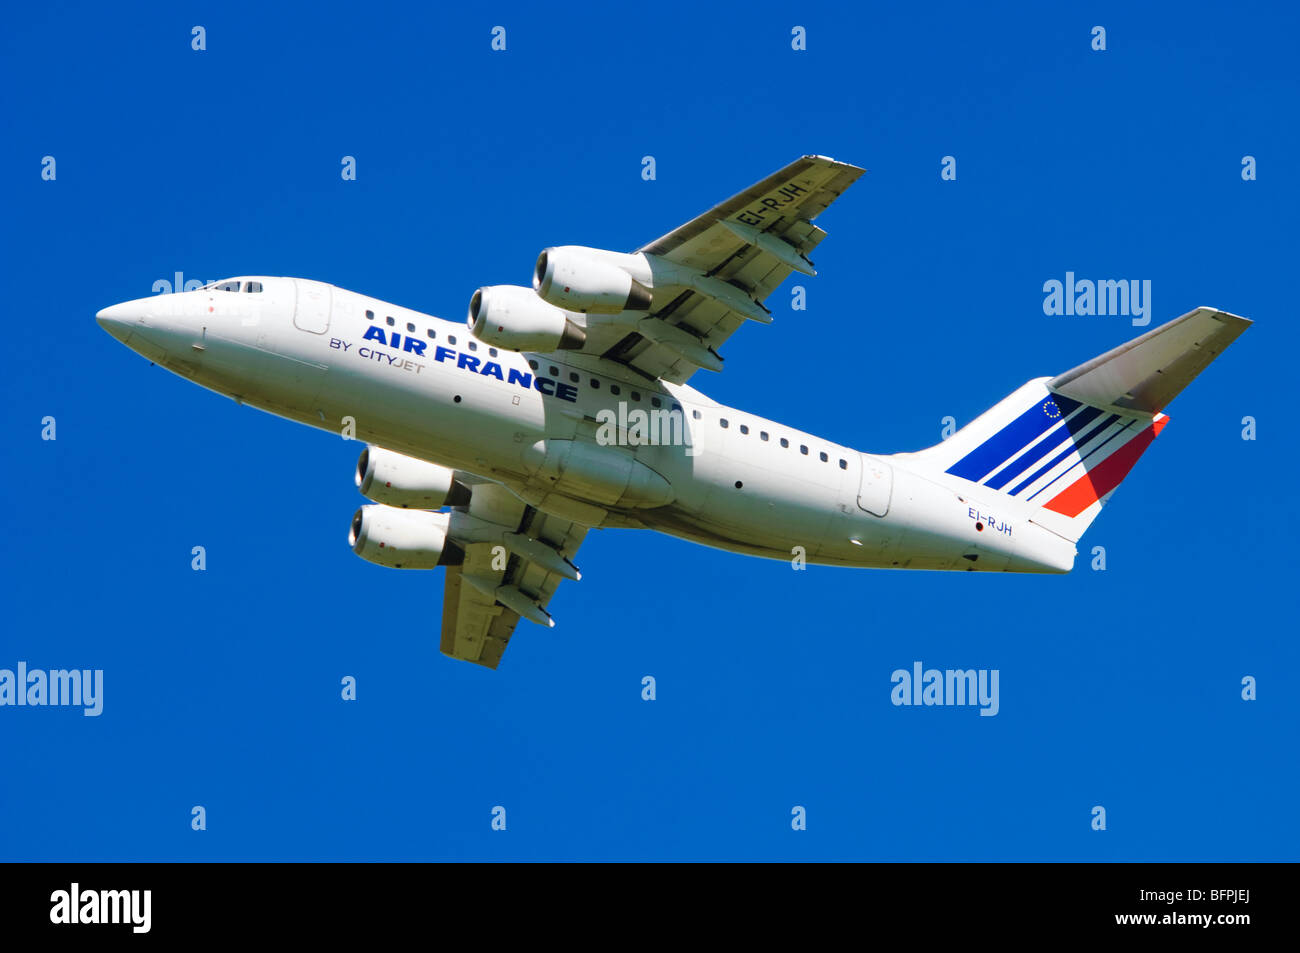 Avro RJ85 operated by Cityjet on behalf of Air France climbing out after taking off from Birmingham Airport, UK. - Stock Image